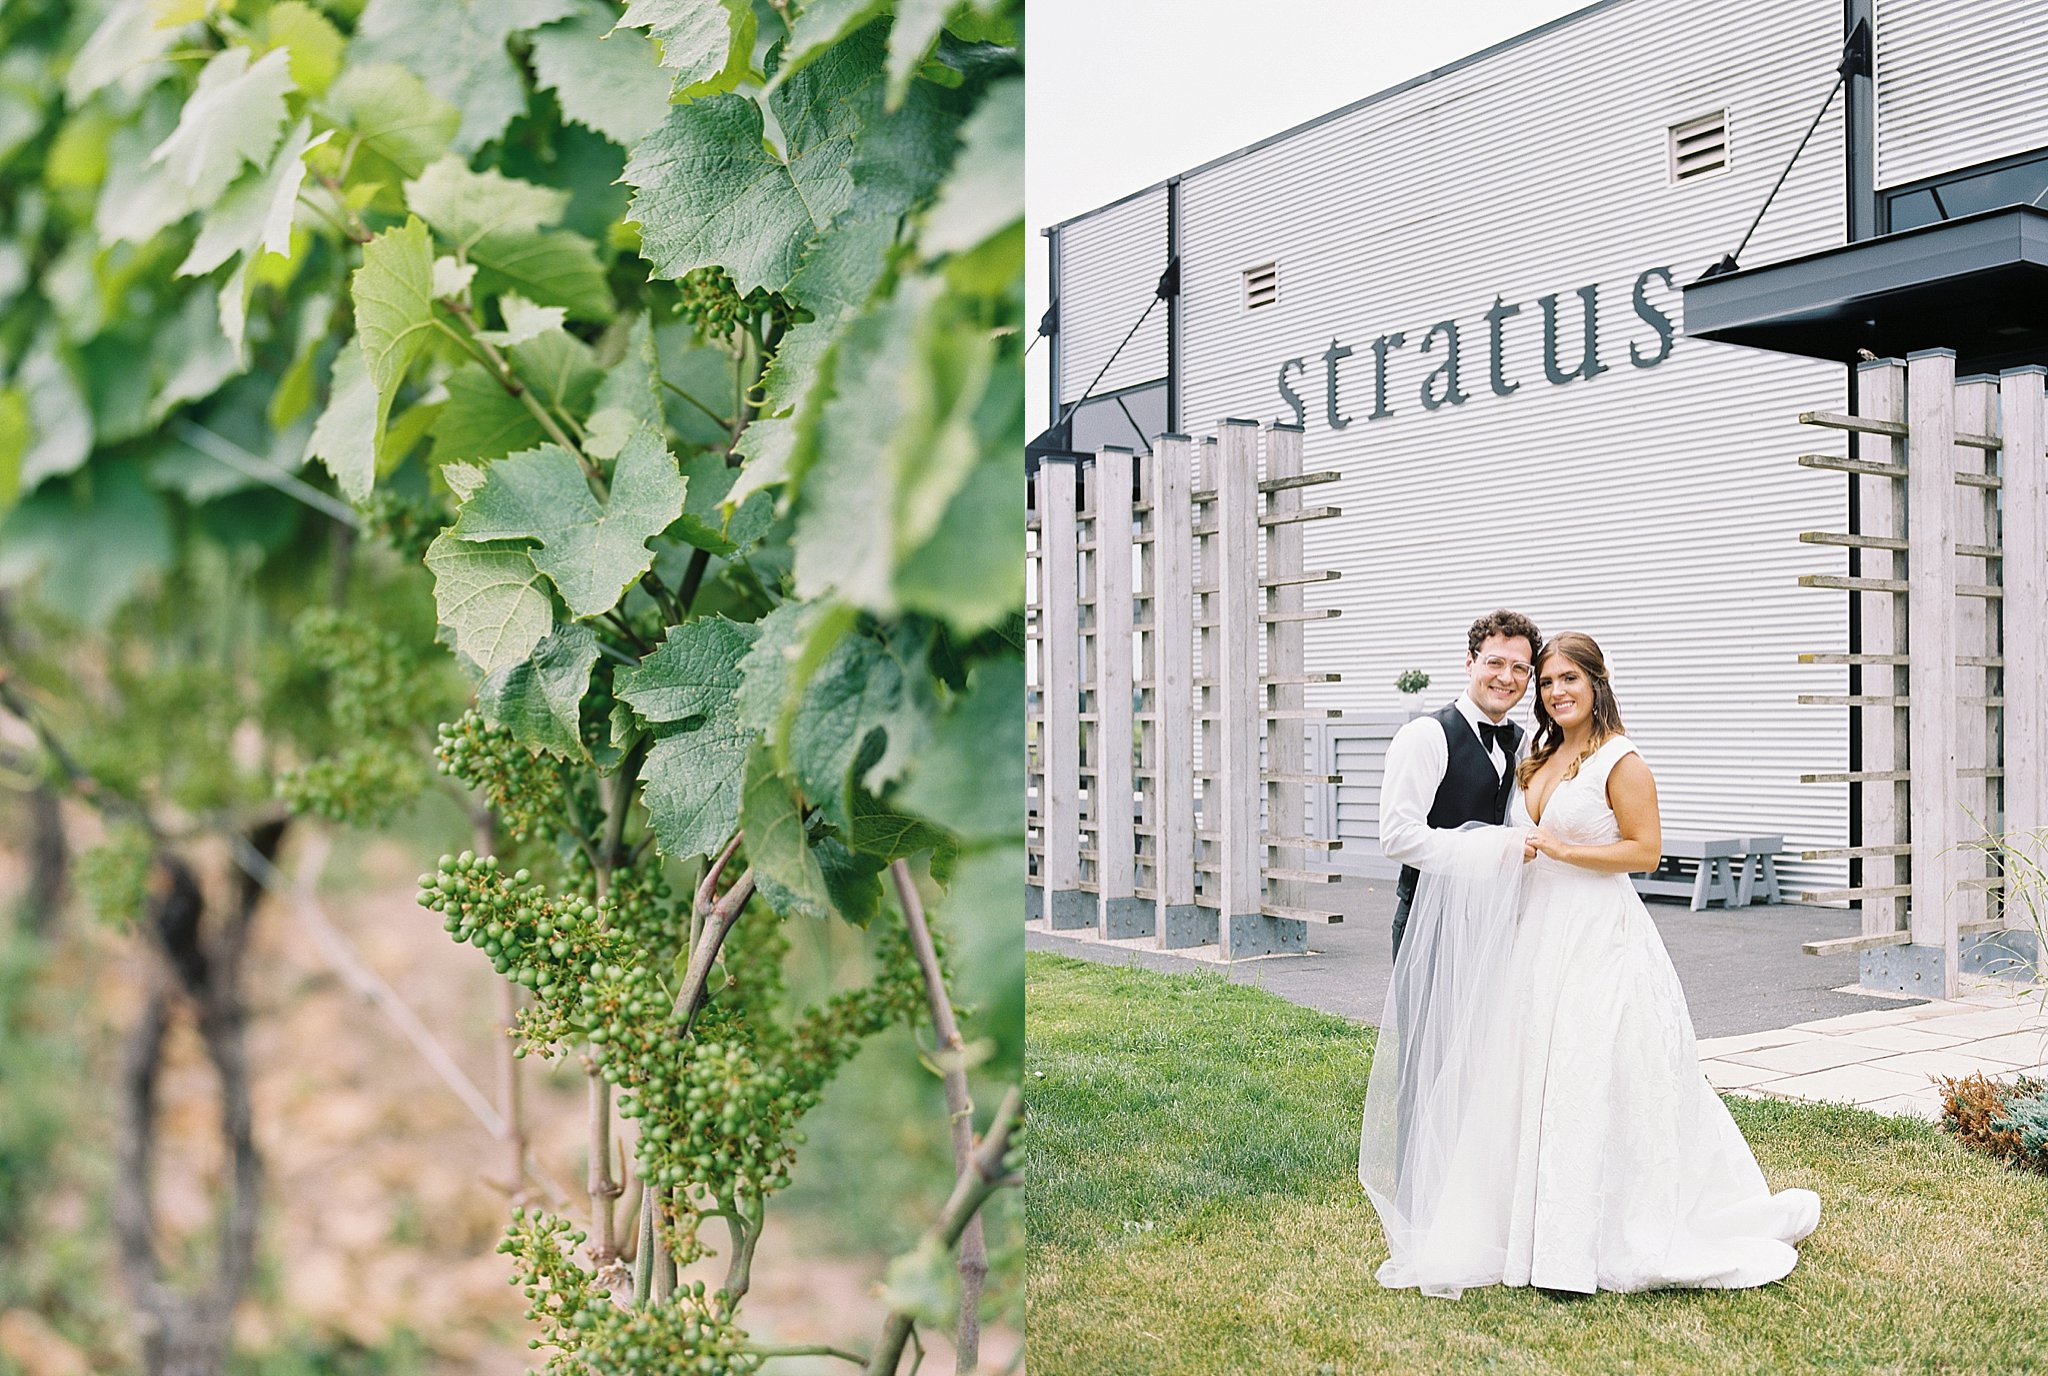 Stratus Winery, Fine art photographer, Durham Region Wedding Photography